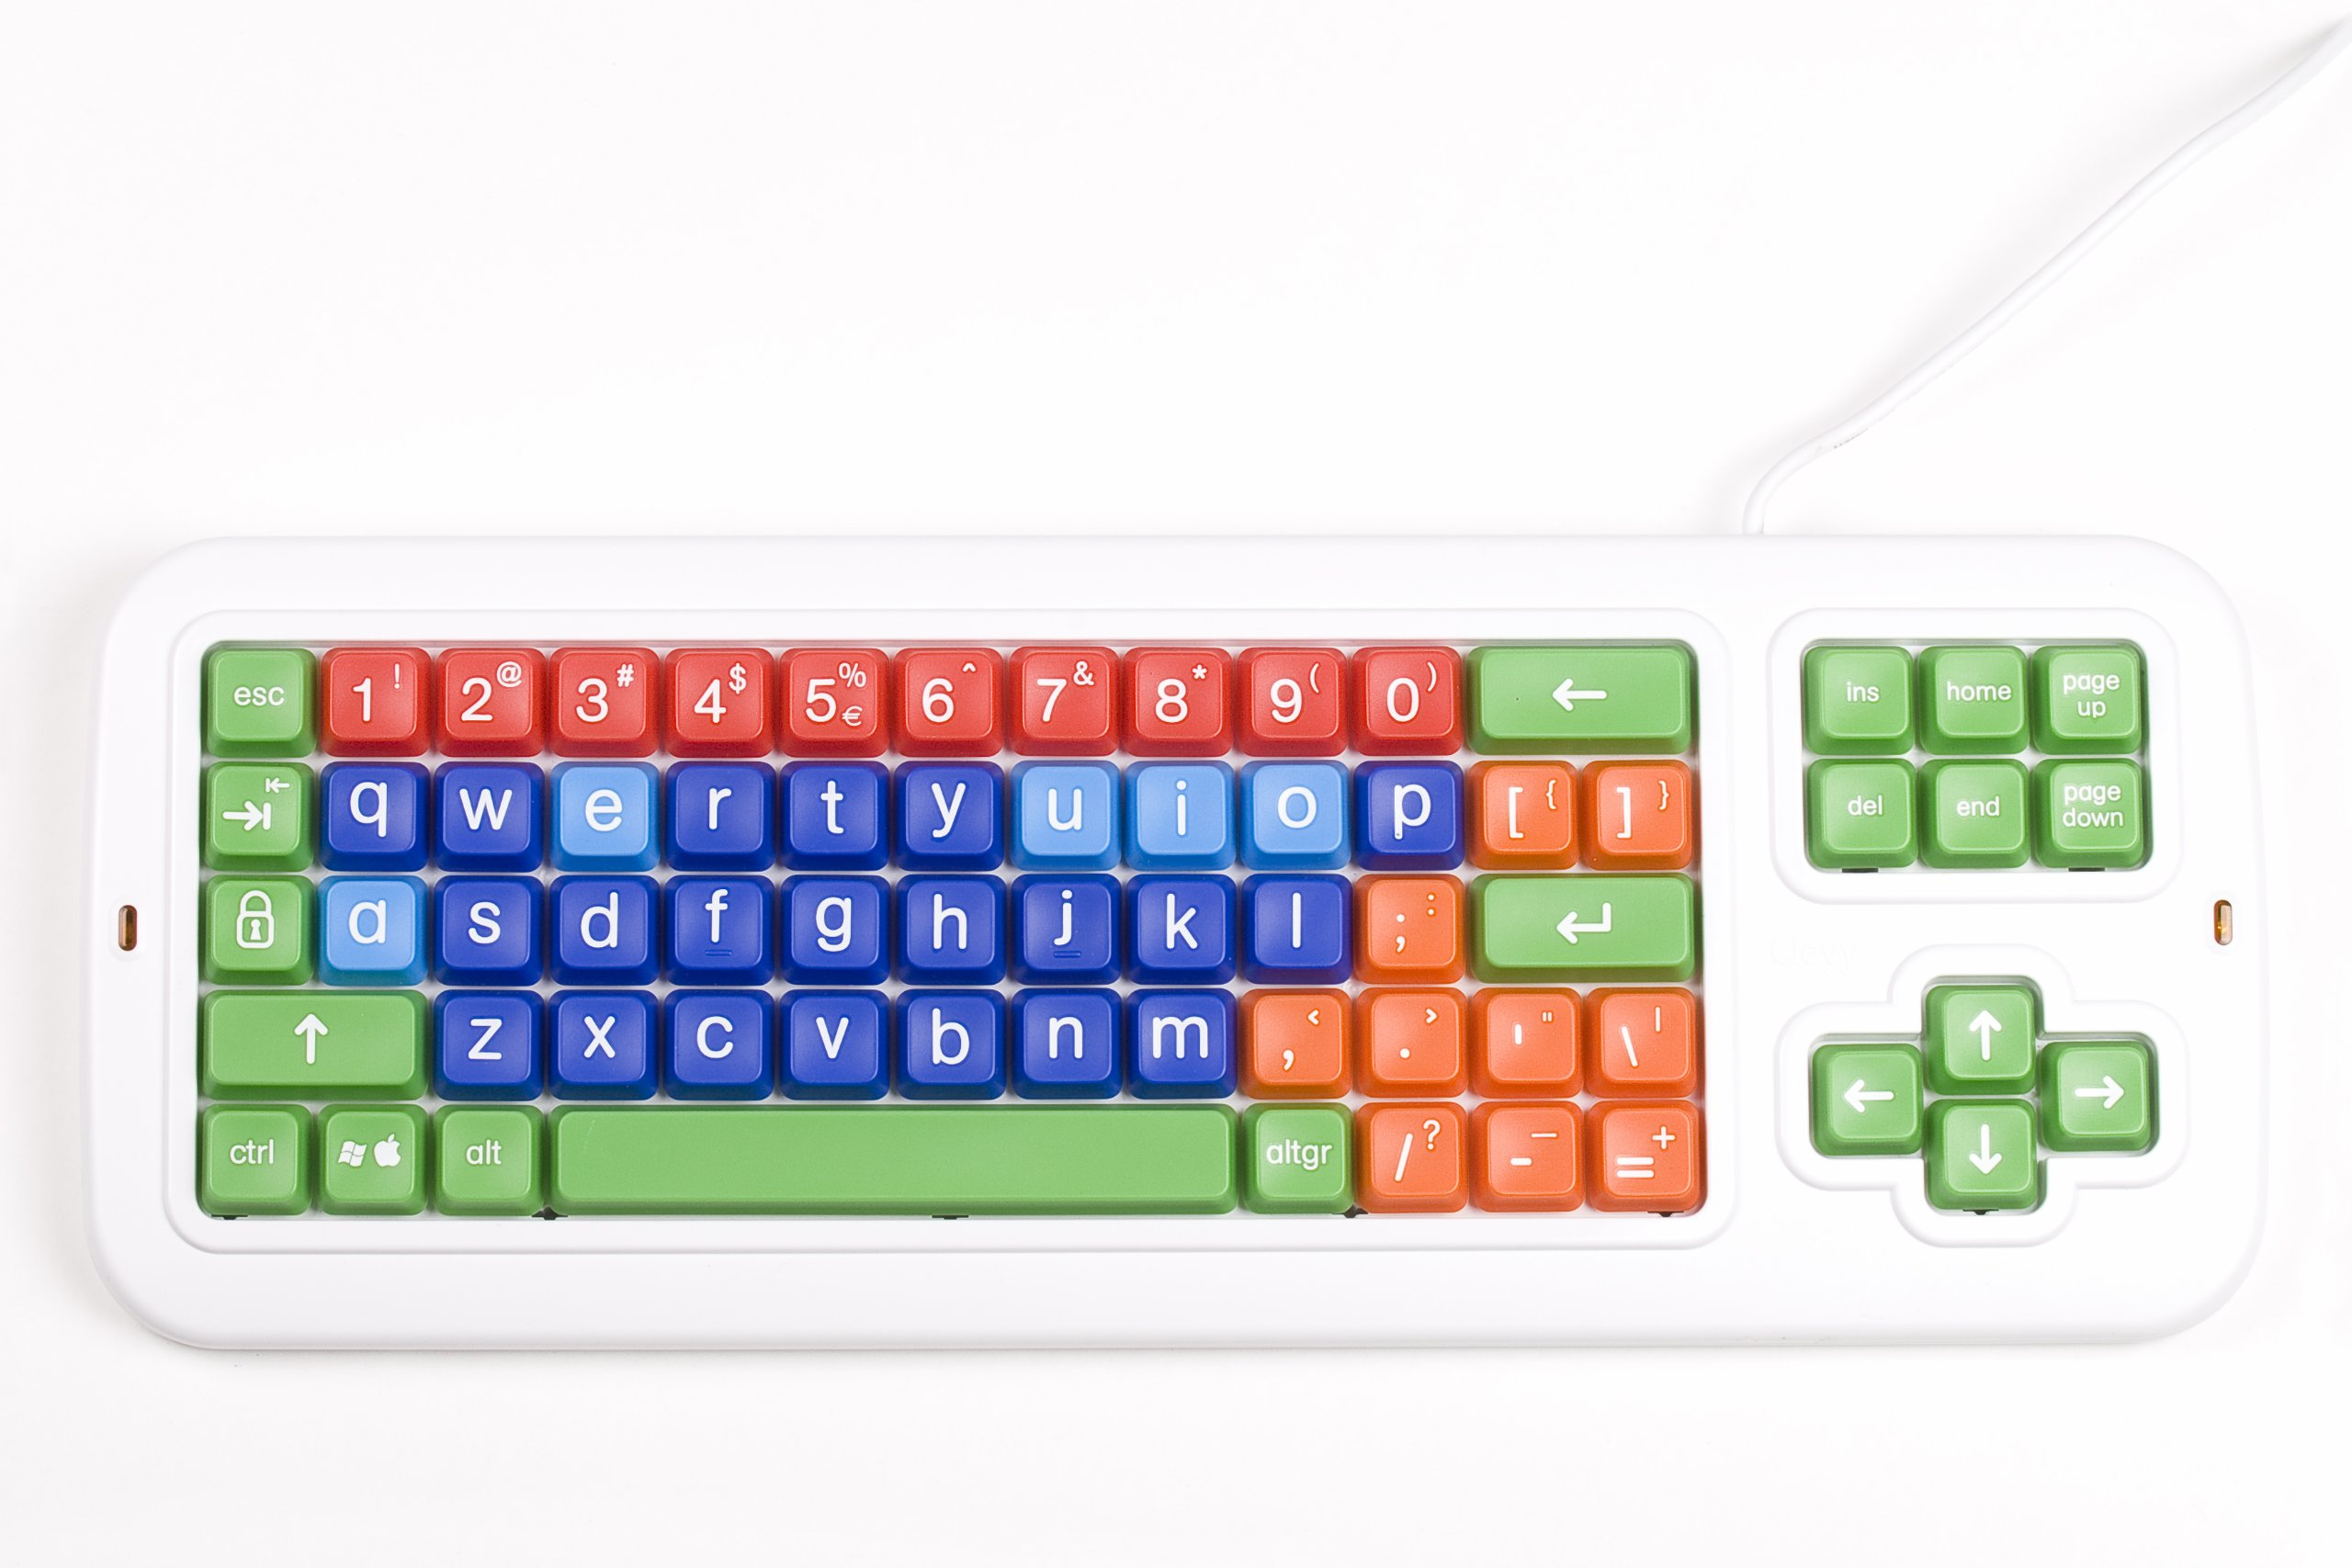 Clevy Keyboard - Large Keys, Colorful and Very Sturdy